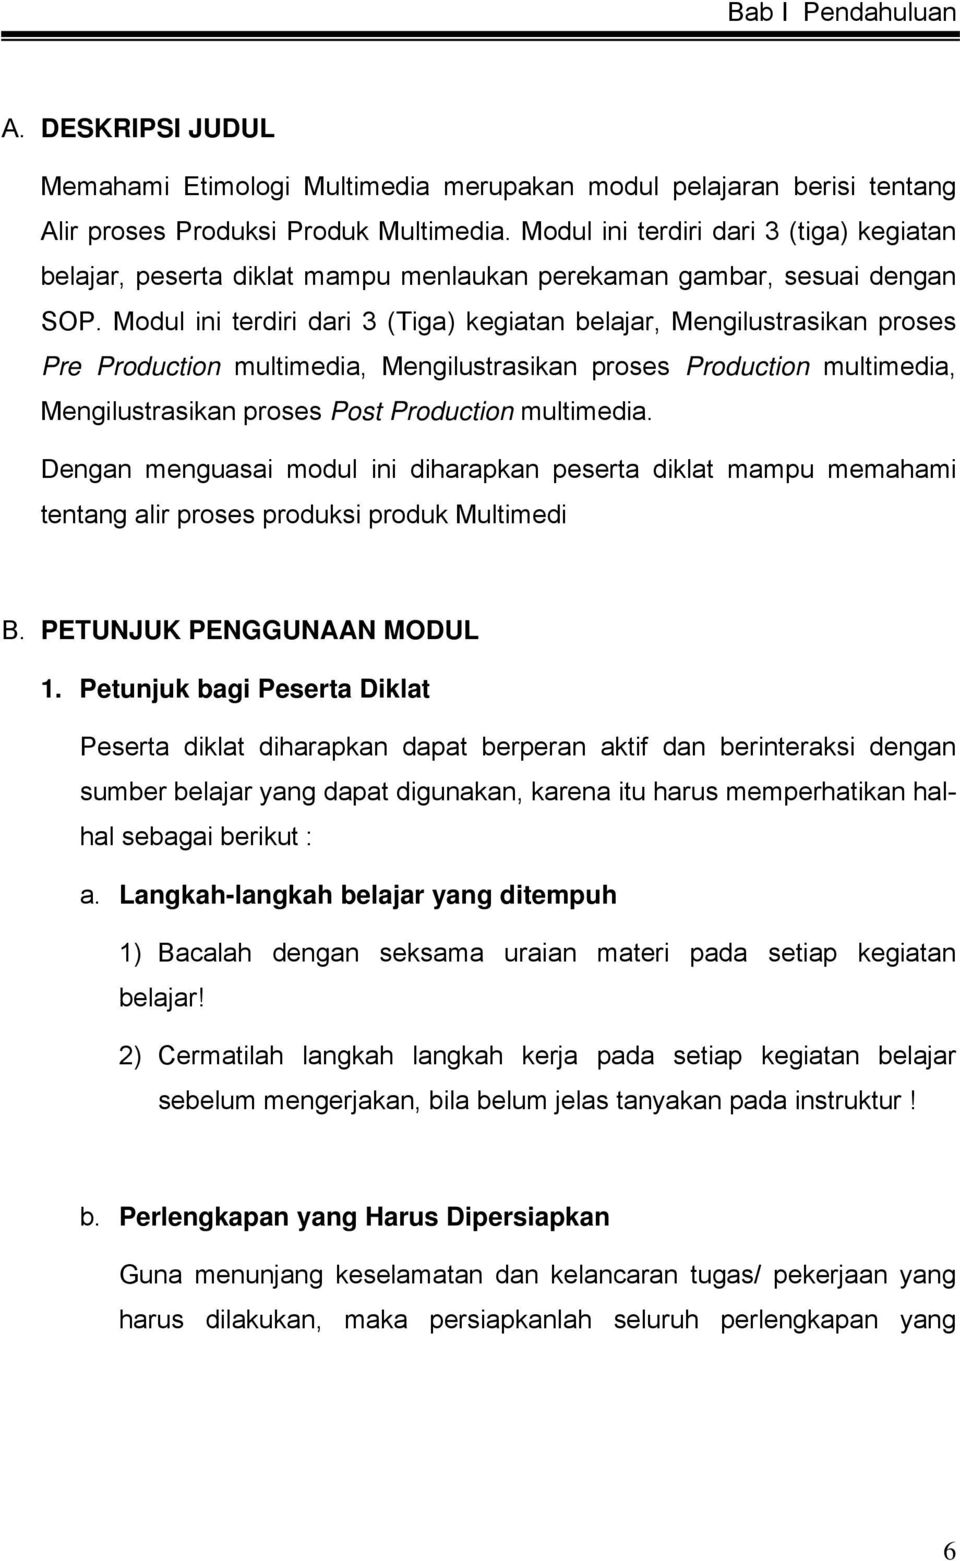 Modul ini terdiri dari 3 (Tiga) kegiatan belajar, Mengilustrasikan proses Pre Production multimedia, Mengilustrasikan proses Production multimedia, Mengilustrasikan proses Post Production multimedia.